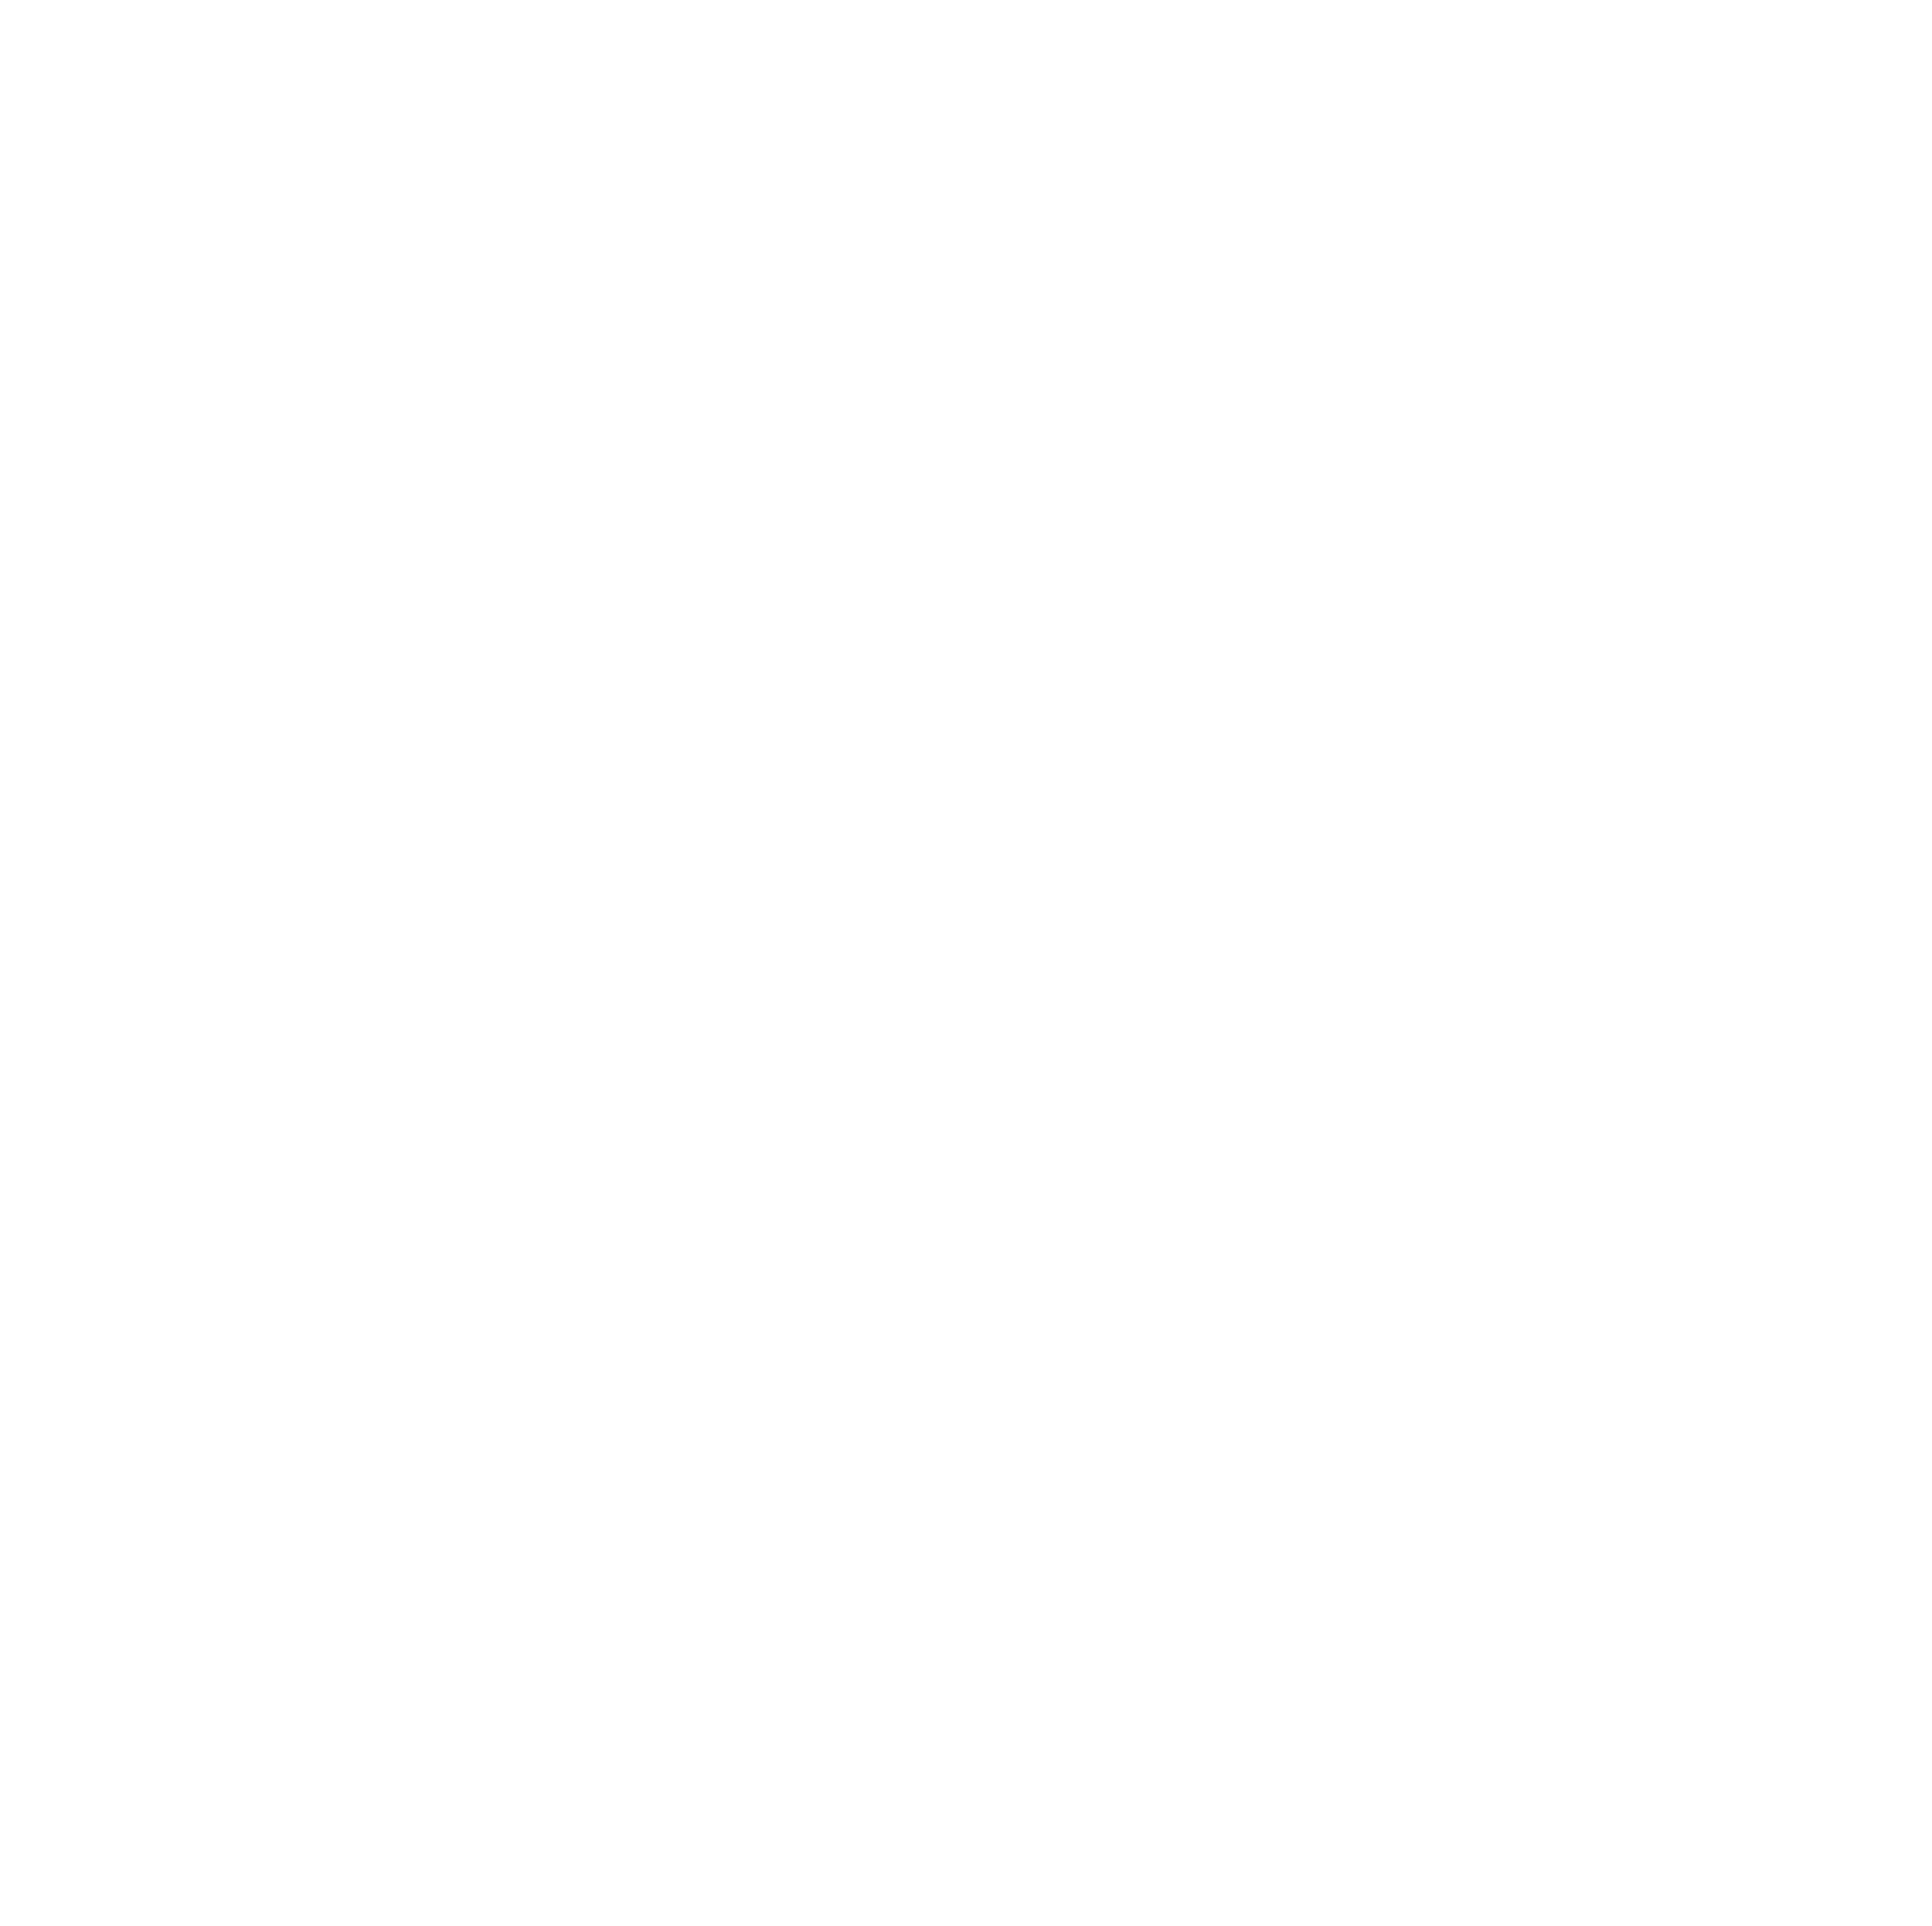 Jeffrey DeMure + Associates Architects Planners Inc.